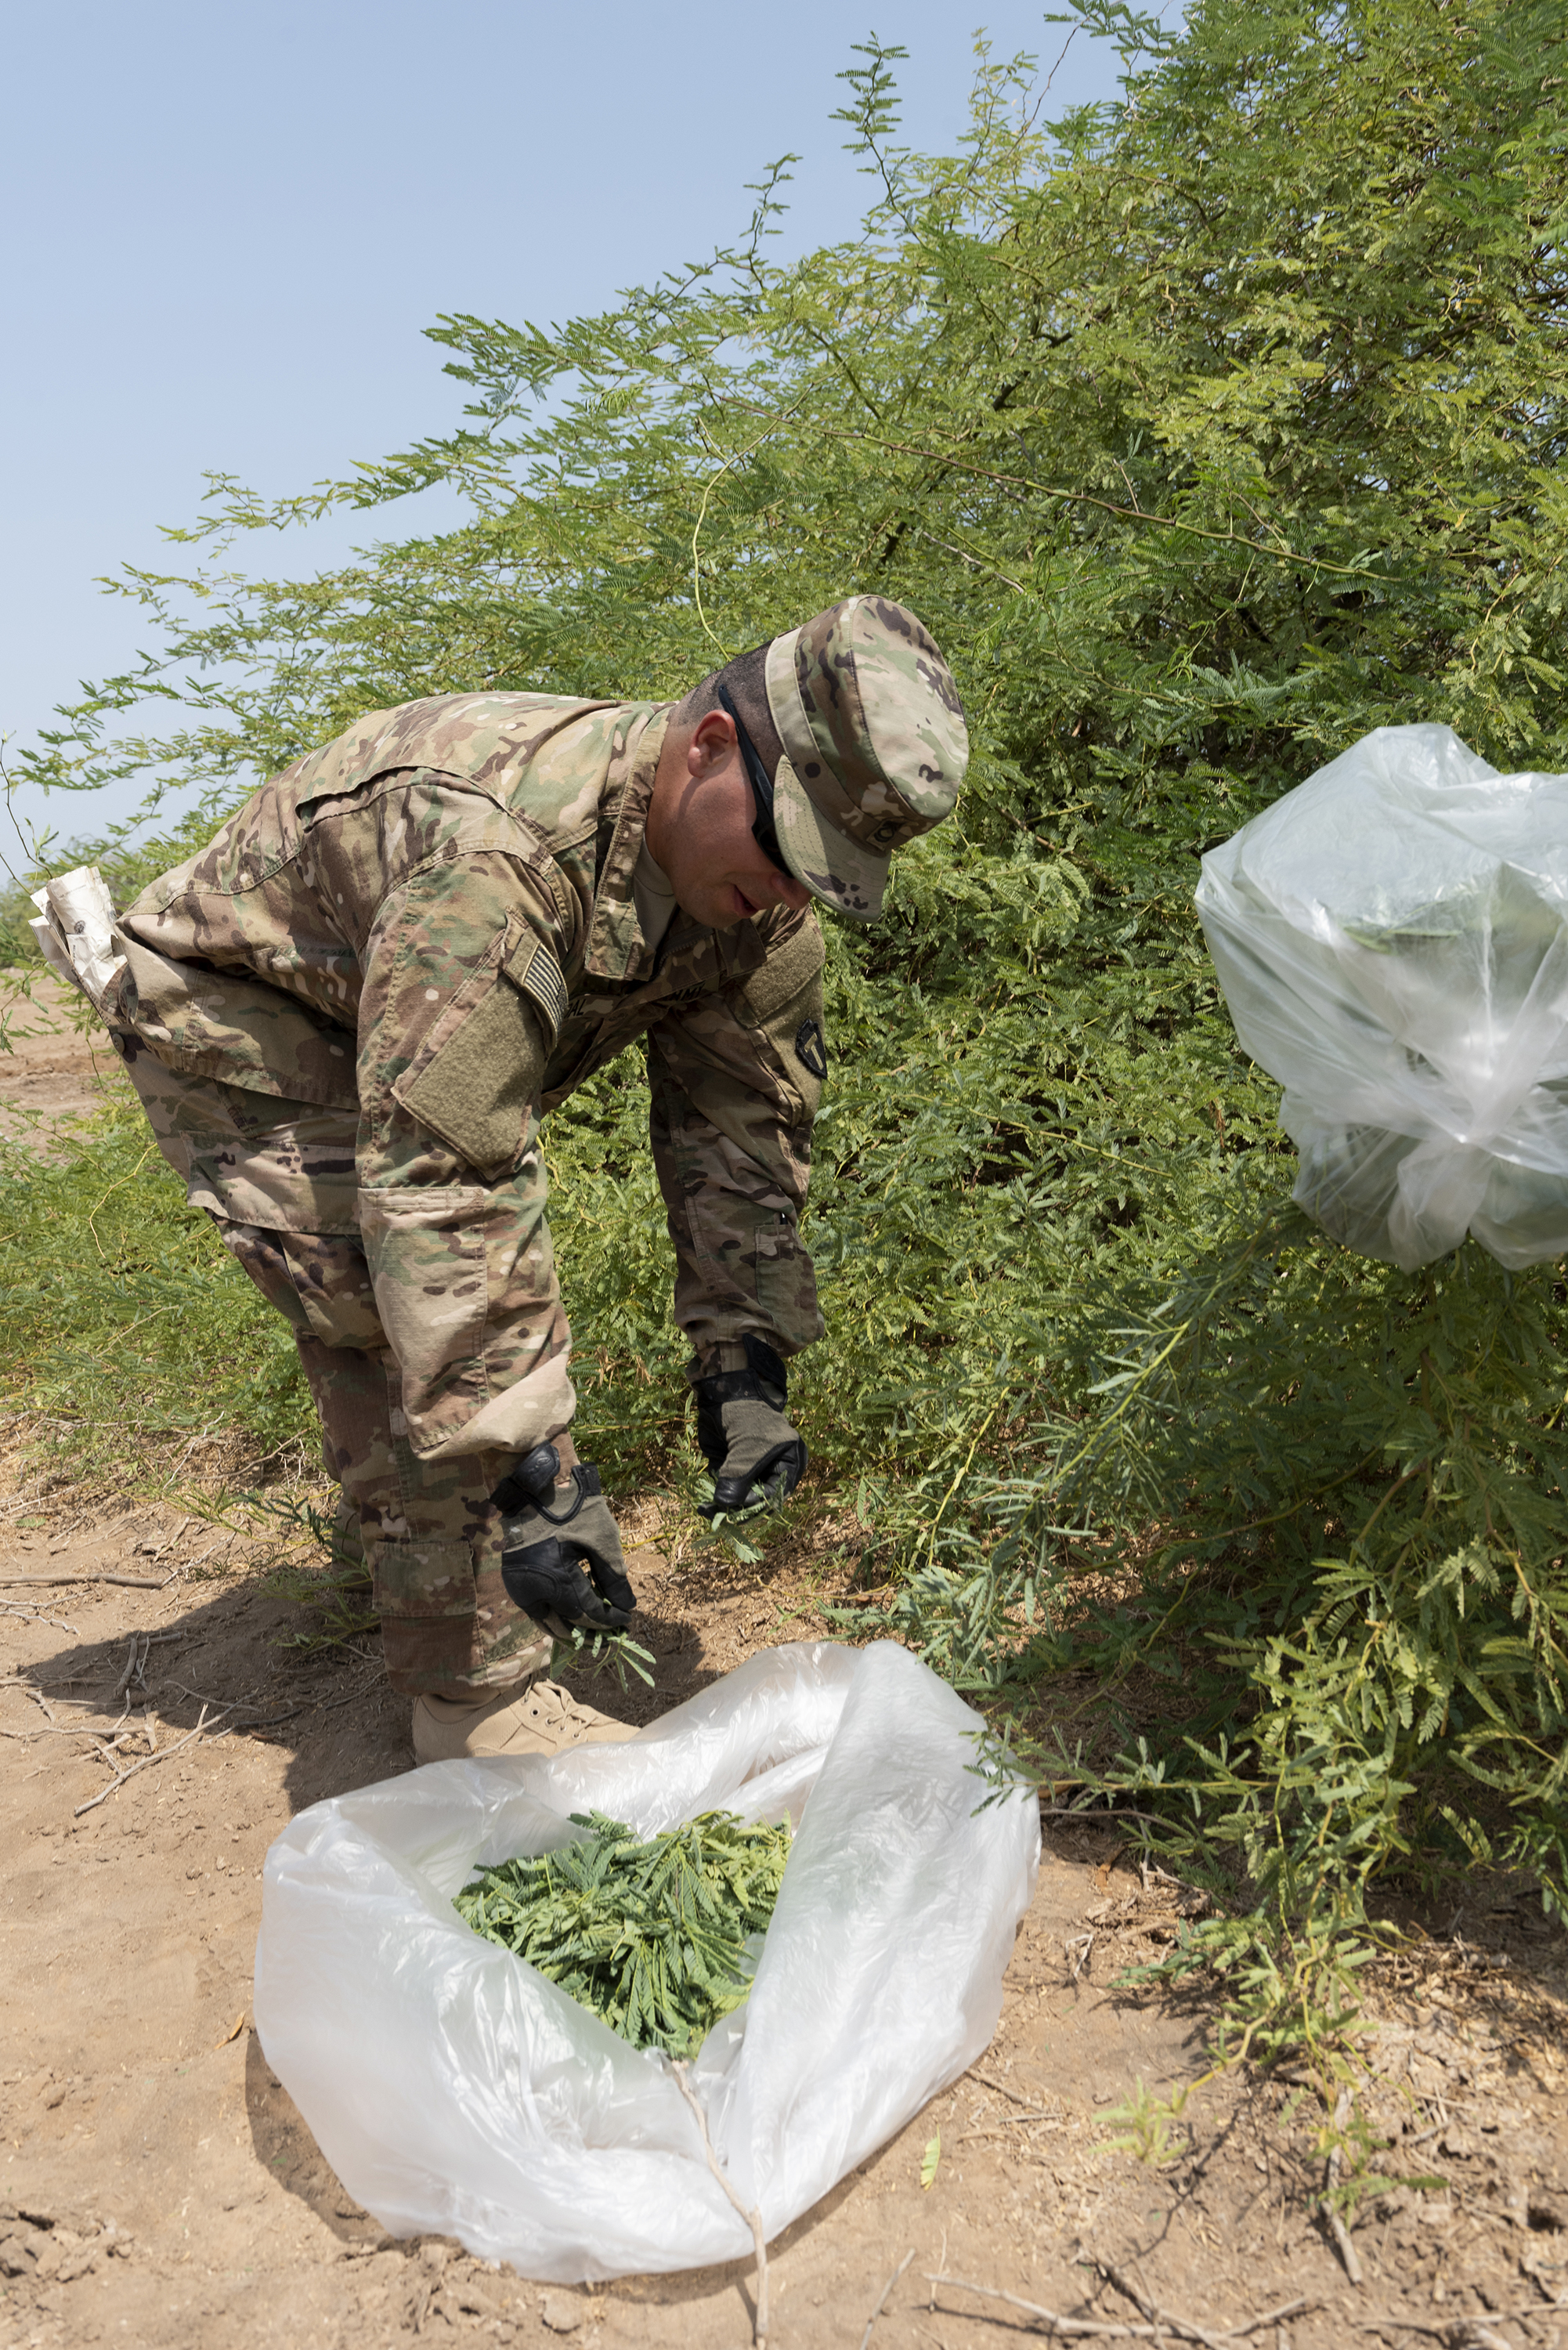 U.S. Army Sergeant 1st Class Amando Vidal, a field artillery firefinder radar operator with 3rd Battalion, 133rd Field Artillery Regiment, Texas National Guard, collects leaves from a Sickle Bush during survival skills training on Camp Lemonnier, Djibouti, Oct. 13, 2018. Vidal placed the leaves in a plastic bag and exposed the bag to the sun, which allowed condensation to gather and enabled him to create an alternative water source in an austere environment. (U.S. Air National Guard photo by Master Sgt. Sarah Mattison)